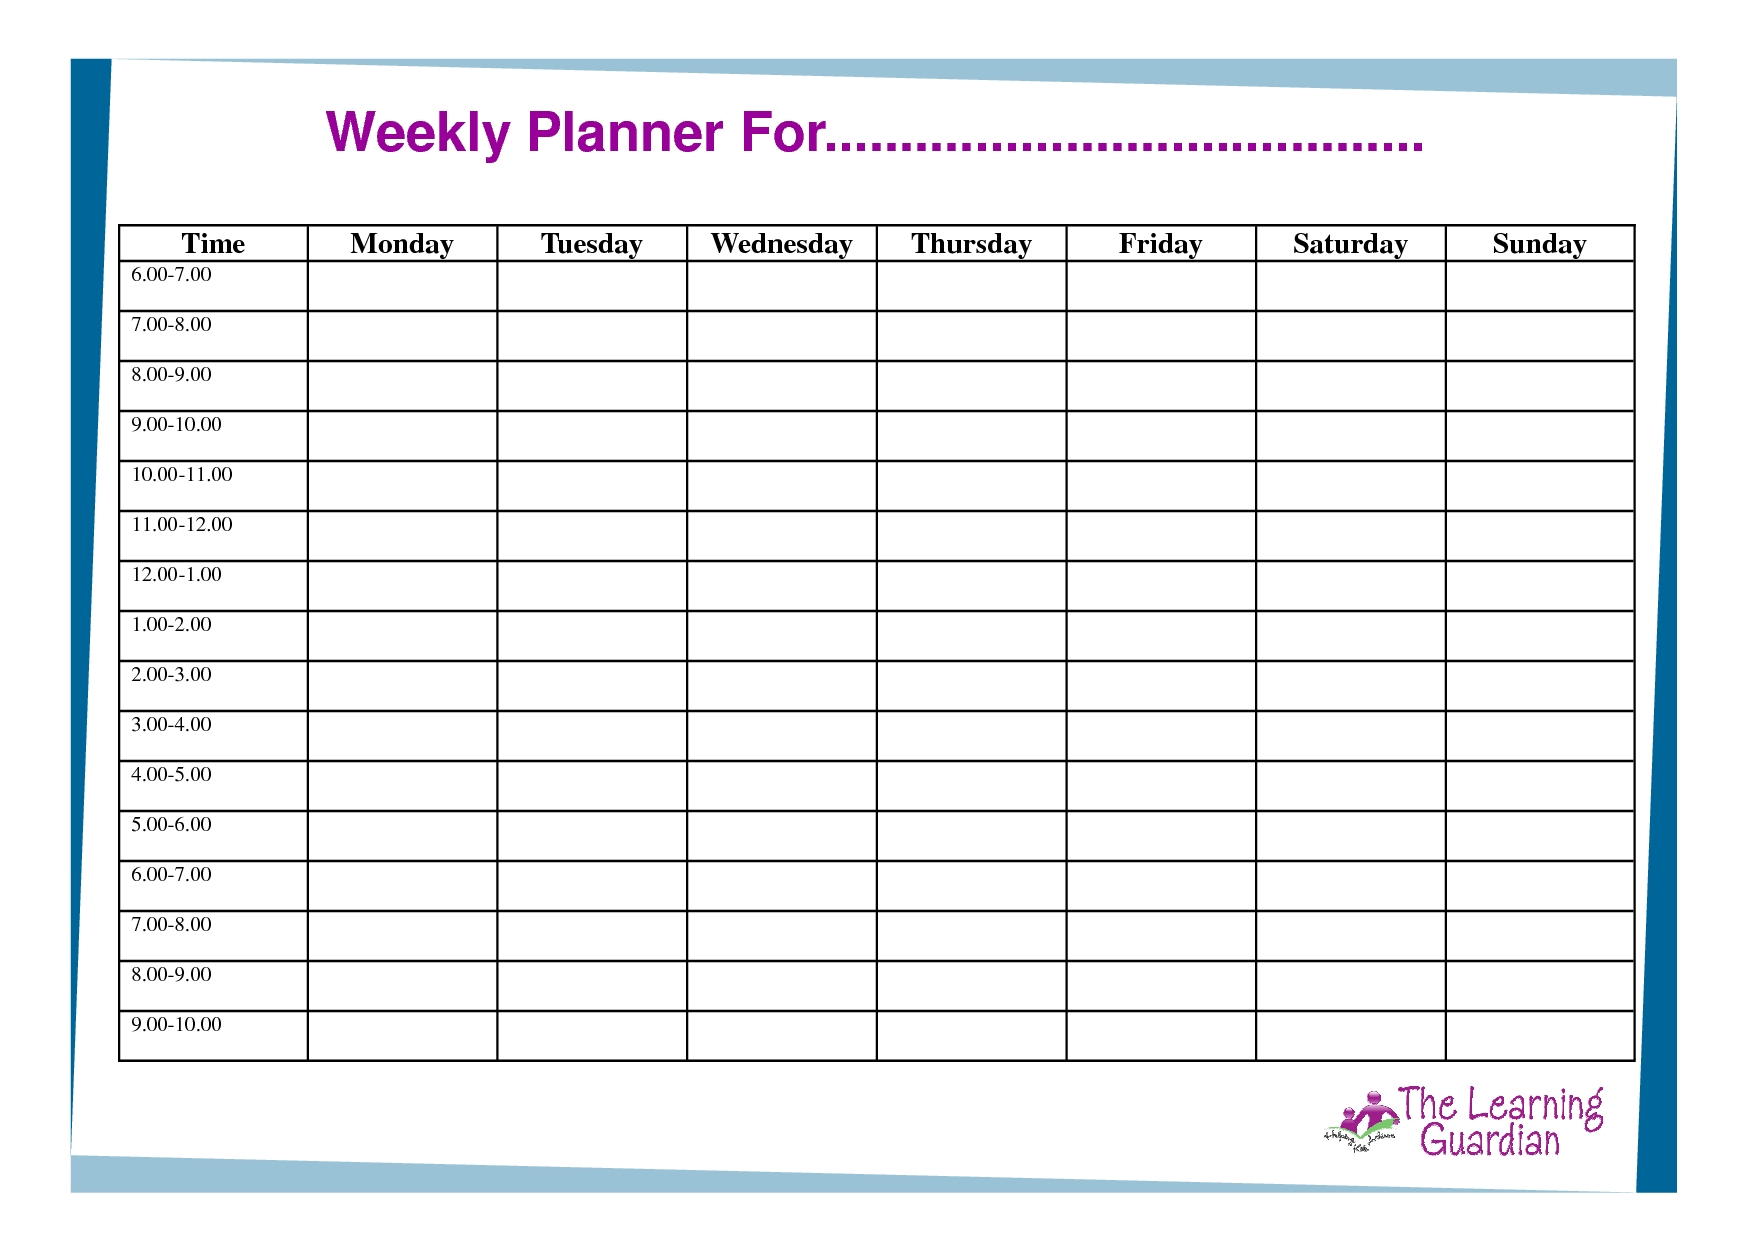 Free Printable Weekly Calendar Templates | Weekly Planner For Time throughout Monday To Friday Weekly Planner